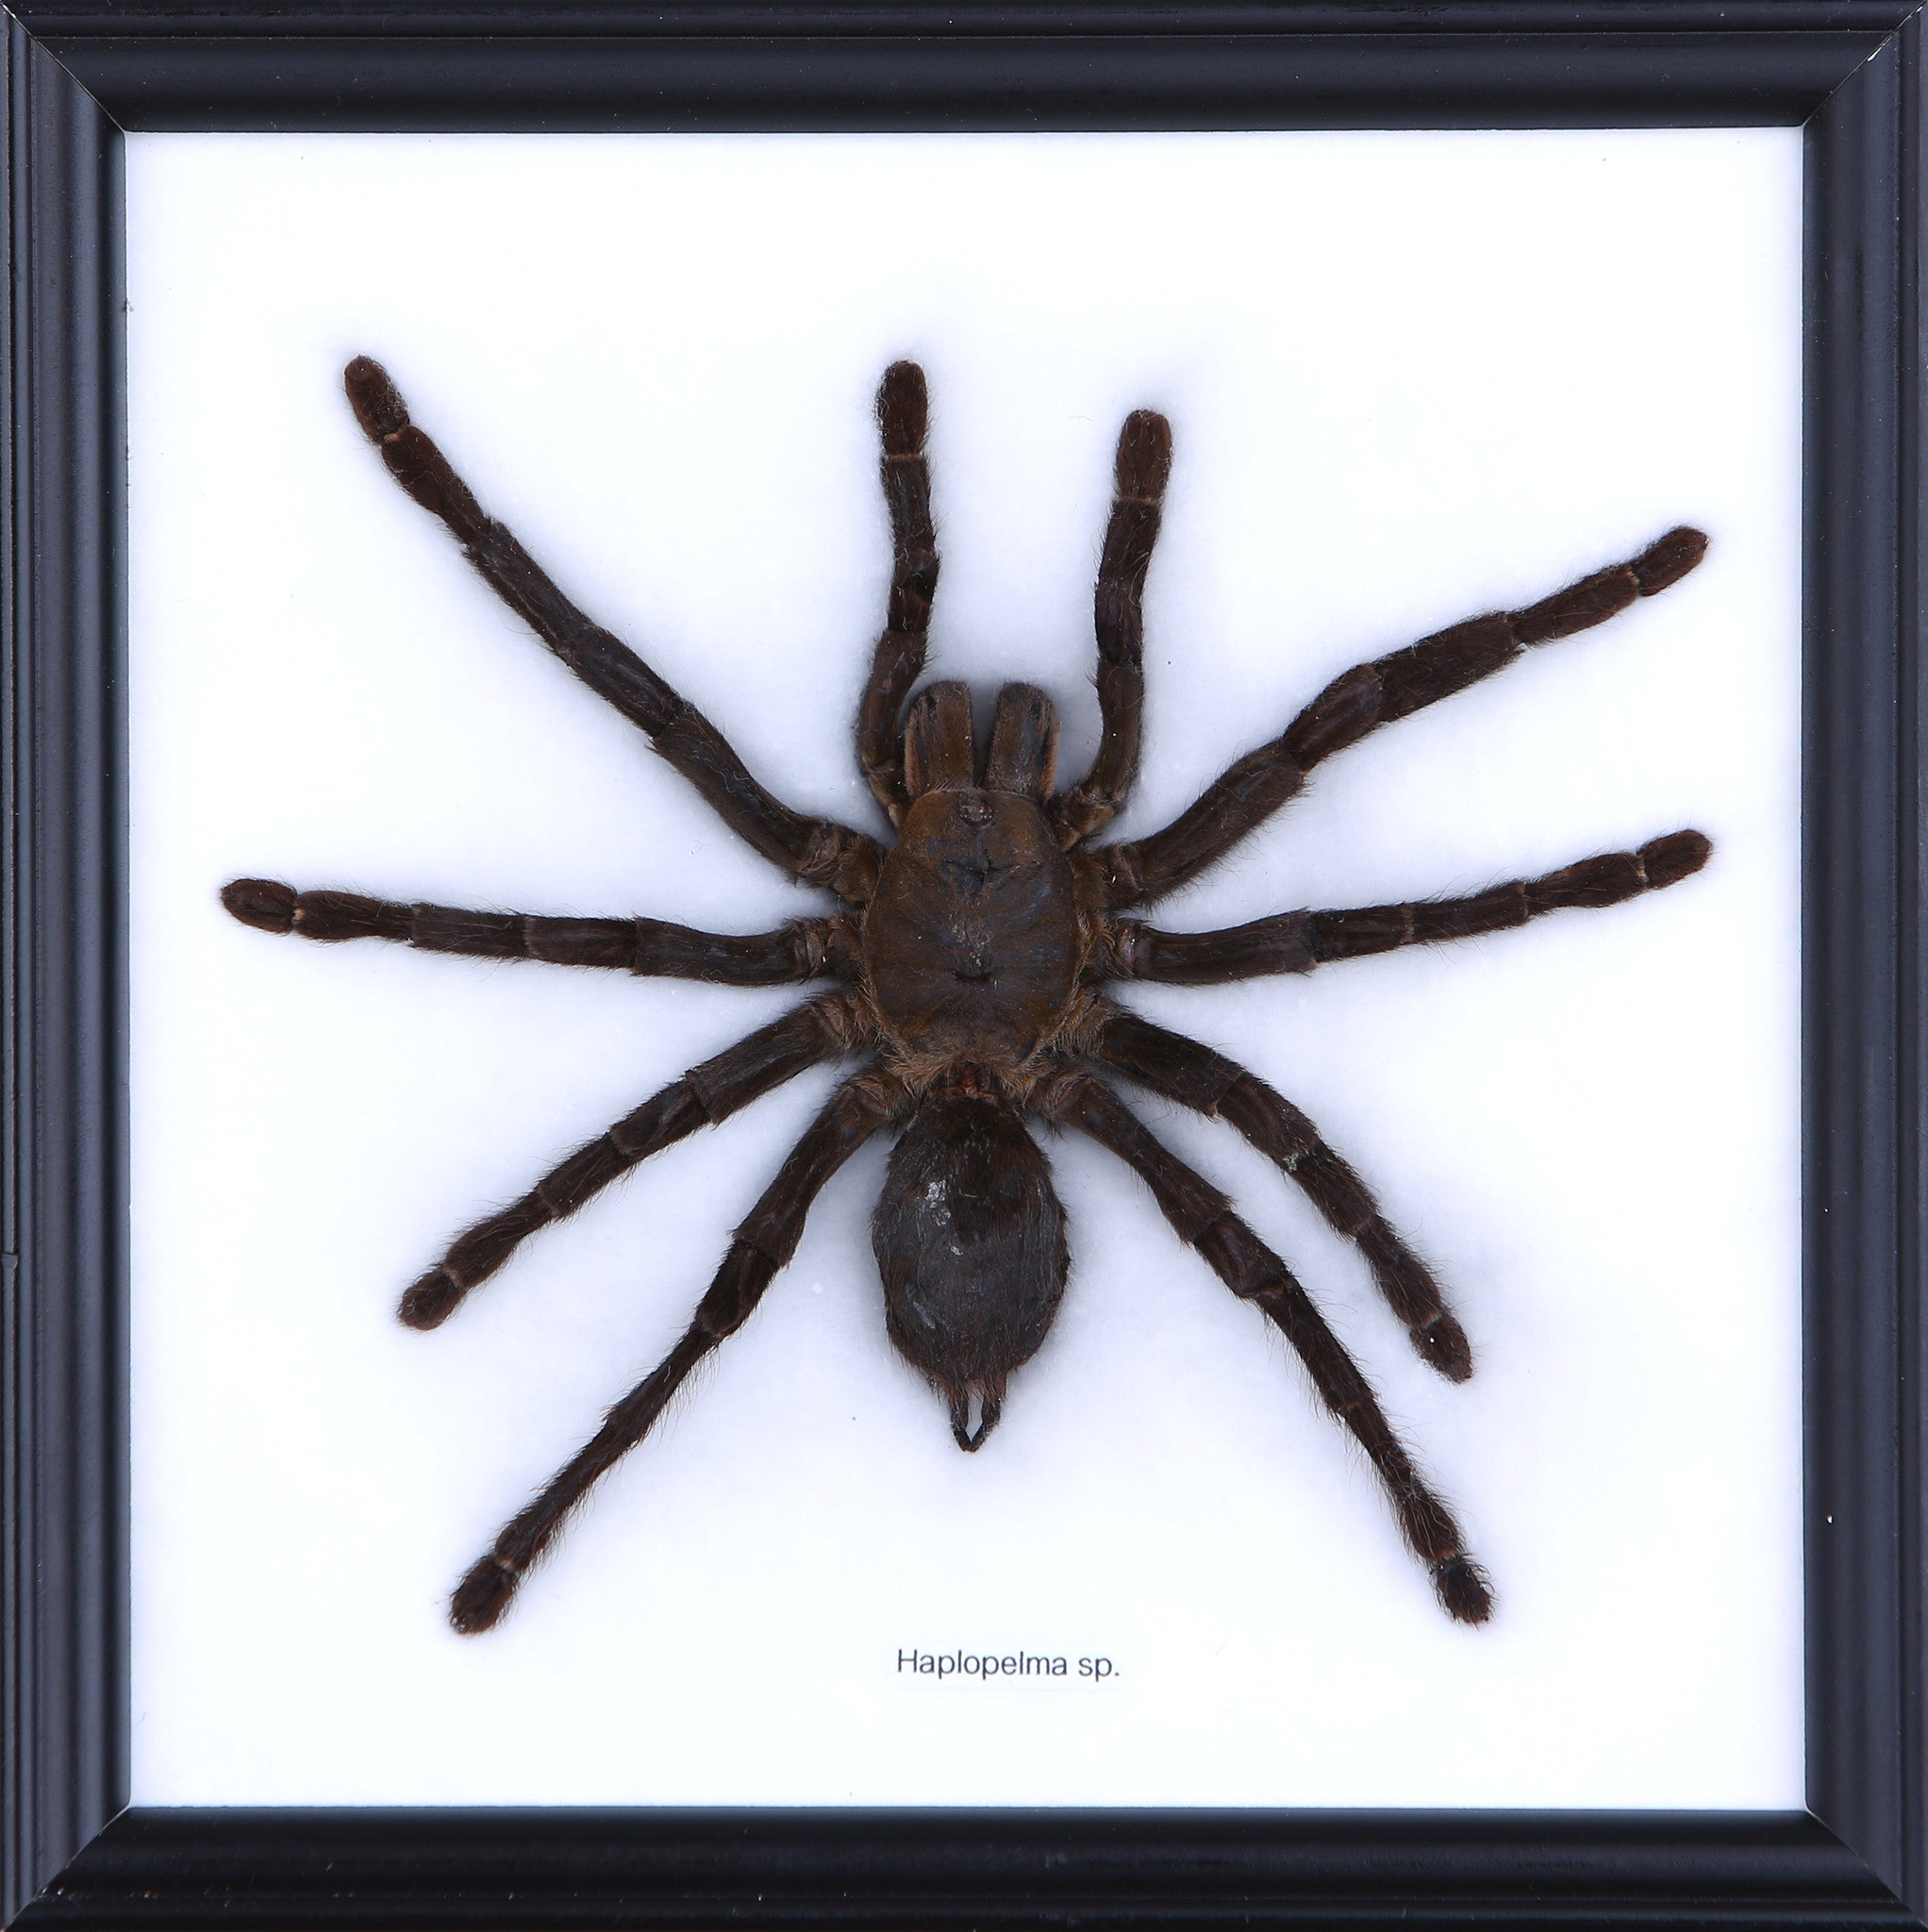 Buy Real Framed Insect Displays | Insect Collections | Wood Frame ...